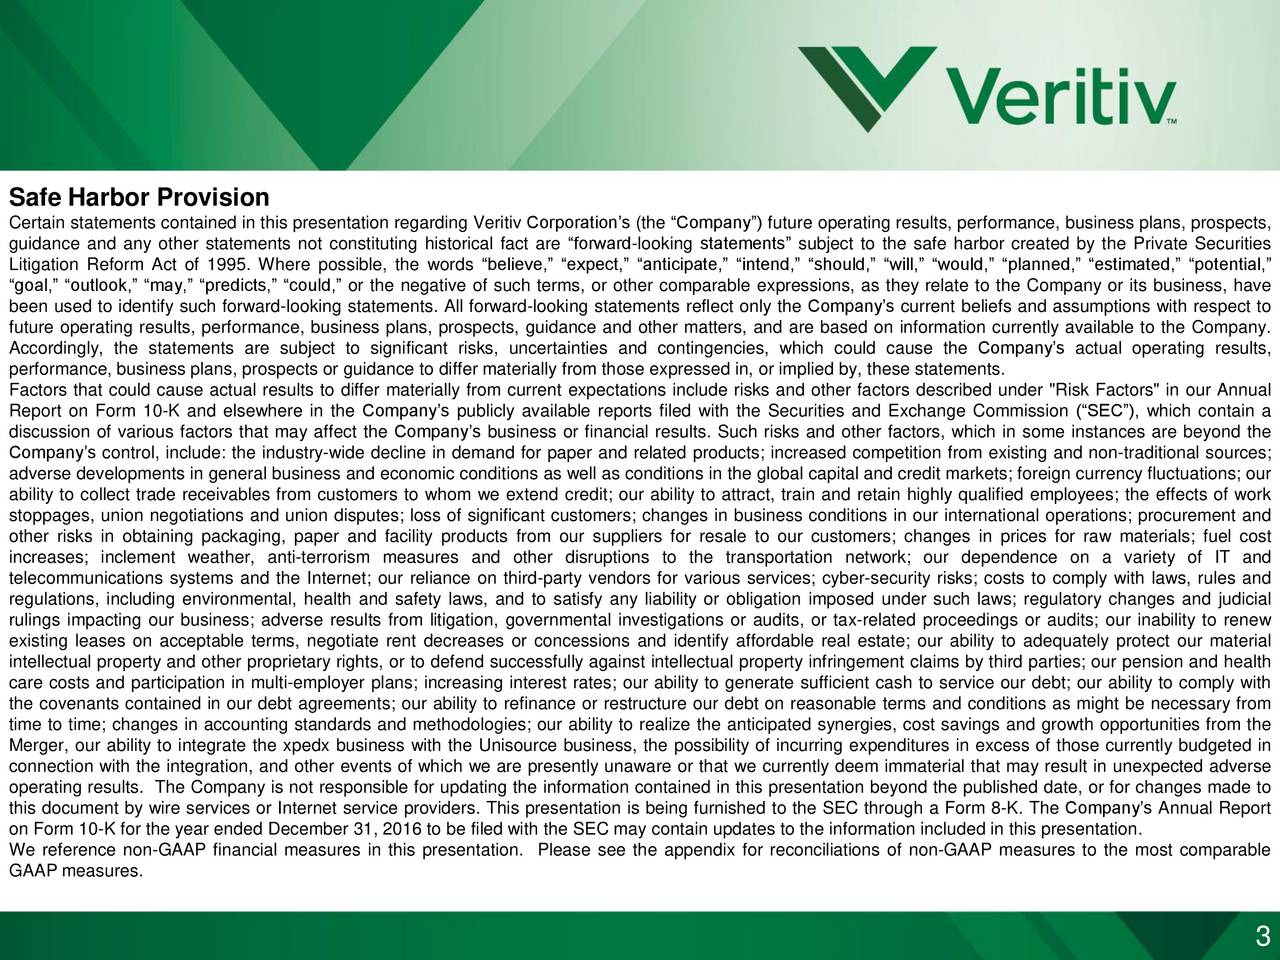 """Certain statements contained in this presentation regarding Veritiv Corporations (the Company) future operating results, performance, business plans, prospects, guidance and any other statements not constituting historical fact are forward-looking statements subject to the safe harbor created by the Private Securities Litigation Reform Act of 1995. Where possible, the words believe, expect, anticipate, intend, should, will, would, planned, estimated, potential, goal, outlook, may, predicts, could, or the negative of such terms, or other comparable expressions, as they relate to the Company or its business, have been used to identify such forward-looking statements. All forward-looking statements reflect only the Companys current beliefs and assumptions with respect to future operating results, performance, business plans, prospects, guidance and other matters, and are based on information currently available to the Company. Accordingly, the statements are subject to significant risks, uncertainties and contingencies, which could cause the Companys actual operating results, performance, business plans, prospects or guidance to differ materially from those expressed in, or implied by, these statements. Factors that could cause actual results to differ materially from current expectations include risks and other factors described under """"Risk Factors"""" in our Annual Report on Form 10-K and elsewhere in the Companys publicly available reports filed with the Securities and Exchange Commission (SEC), which contain a discussion of various factors that may affect the Companys business or financial results. Such risks and other factors, which in some instances are beyond the Companys control, include: the industry-wide decline in demand for paper and related products; increased competition from existing and non-traditional sources; adverse developments in general business and economic conditions as well as conditions in the global capital and credit markets; foreign currency f"""